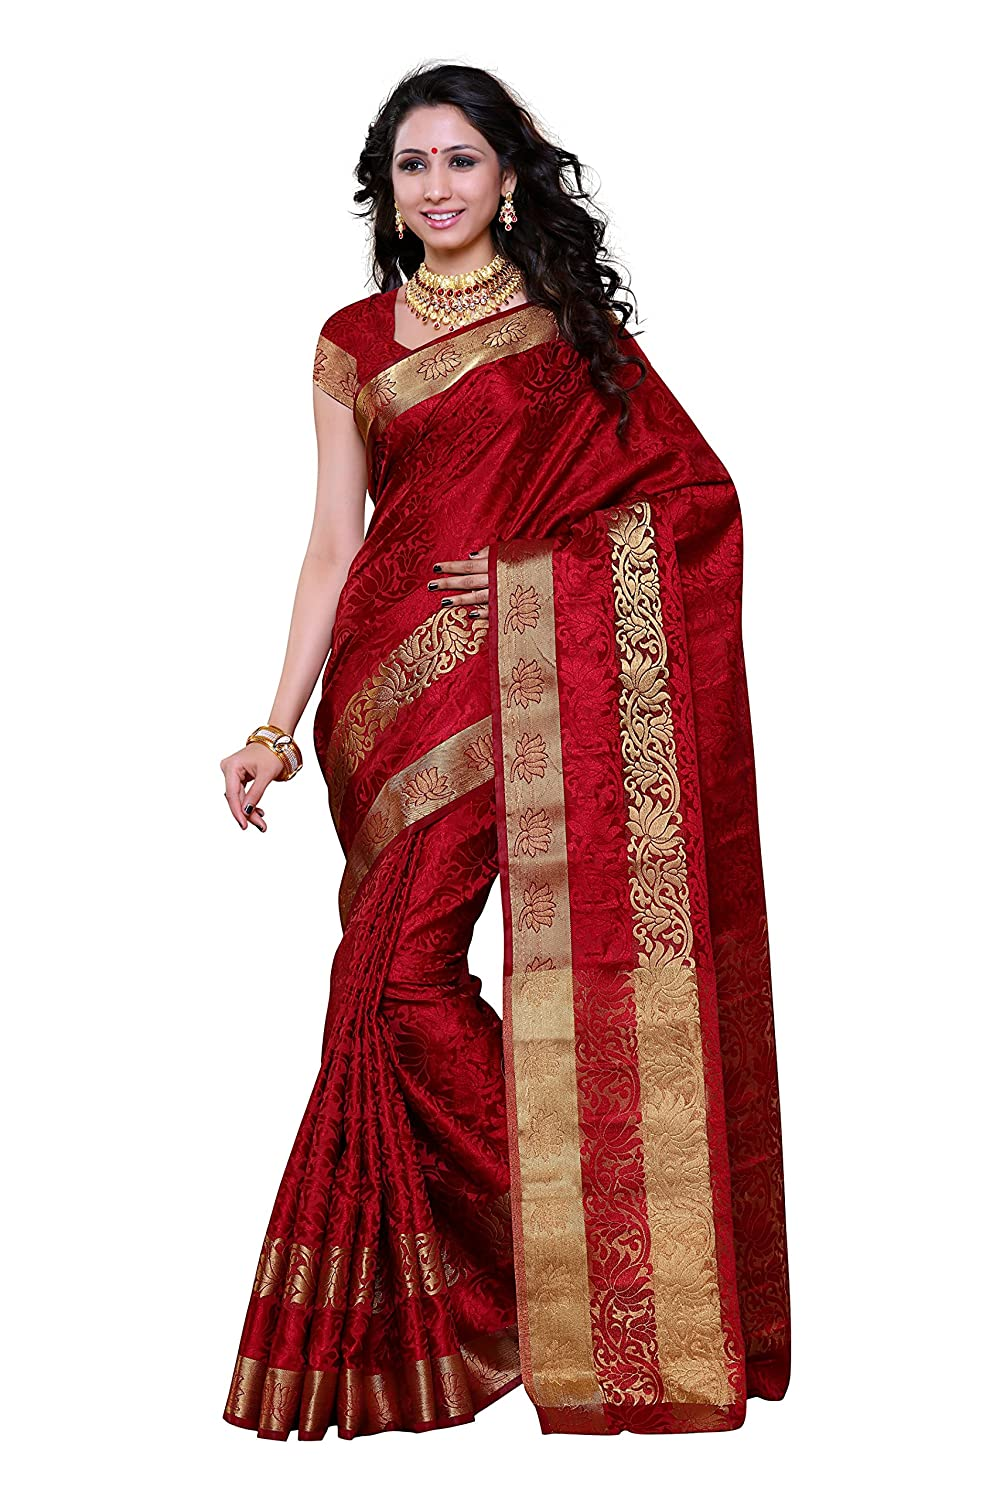 Mimosa Women's Artificial Silk Saree kanchipuram Uppada style